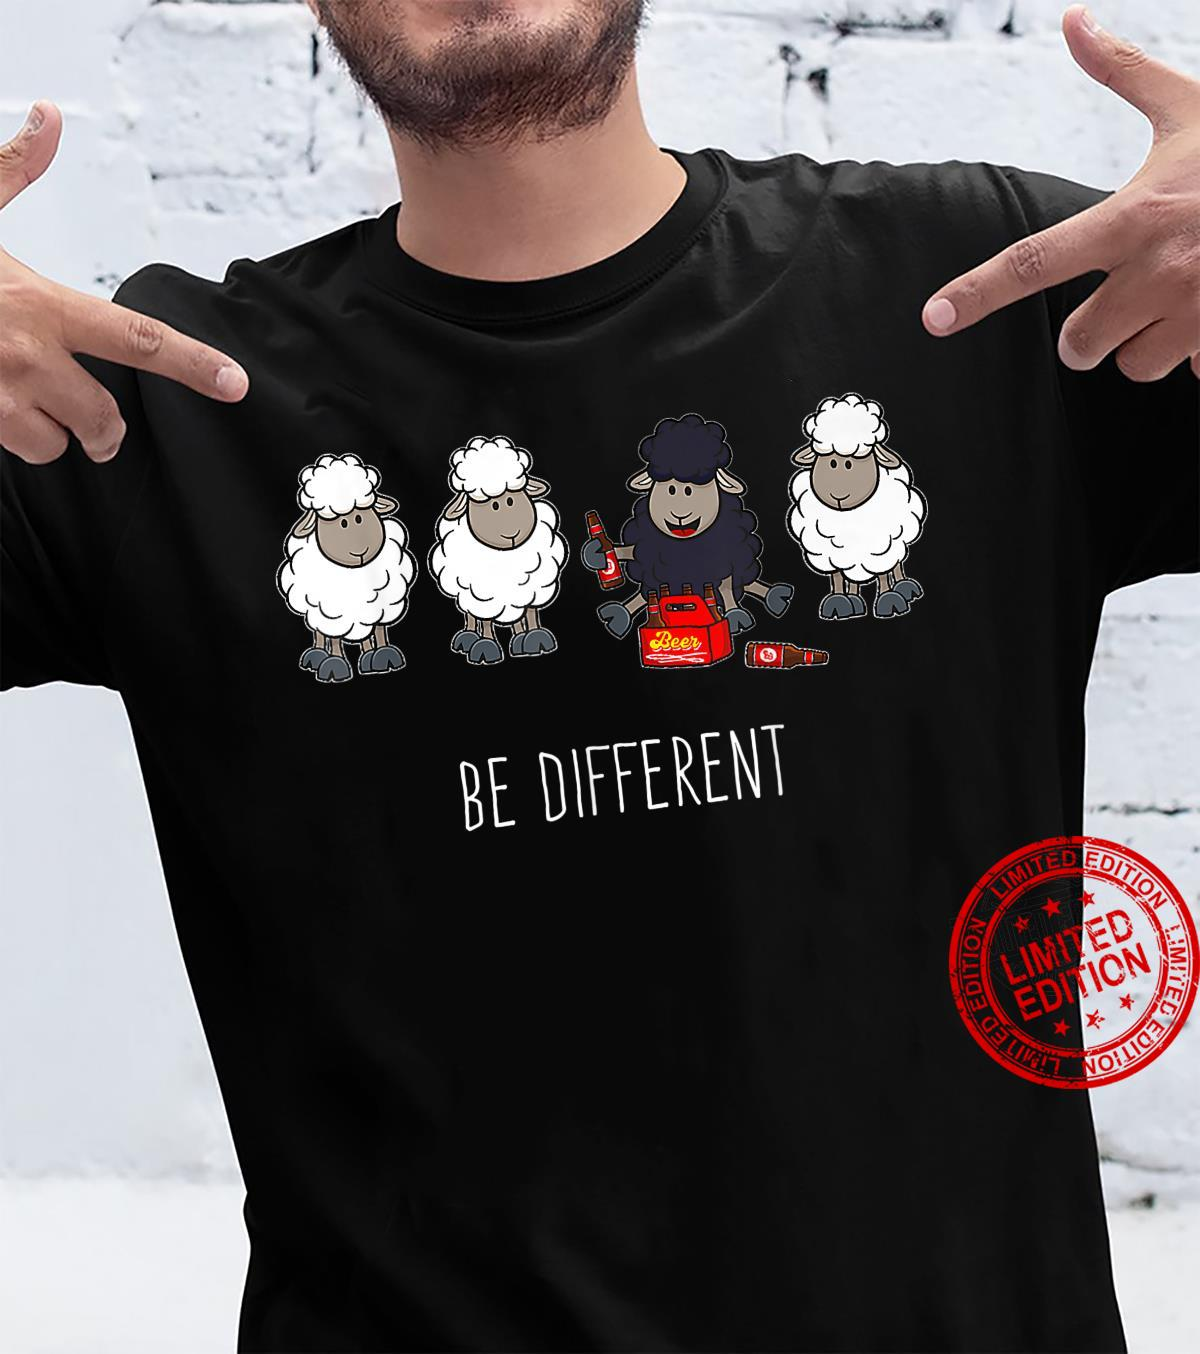 Be Different Beer Drinking Black Sheep for Beer Shirt